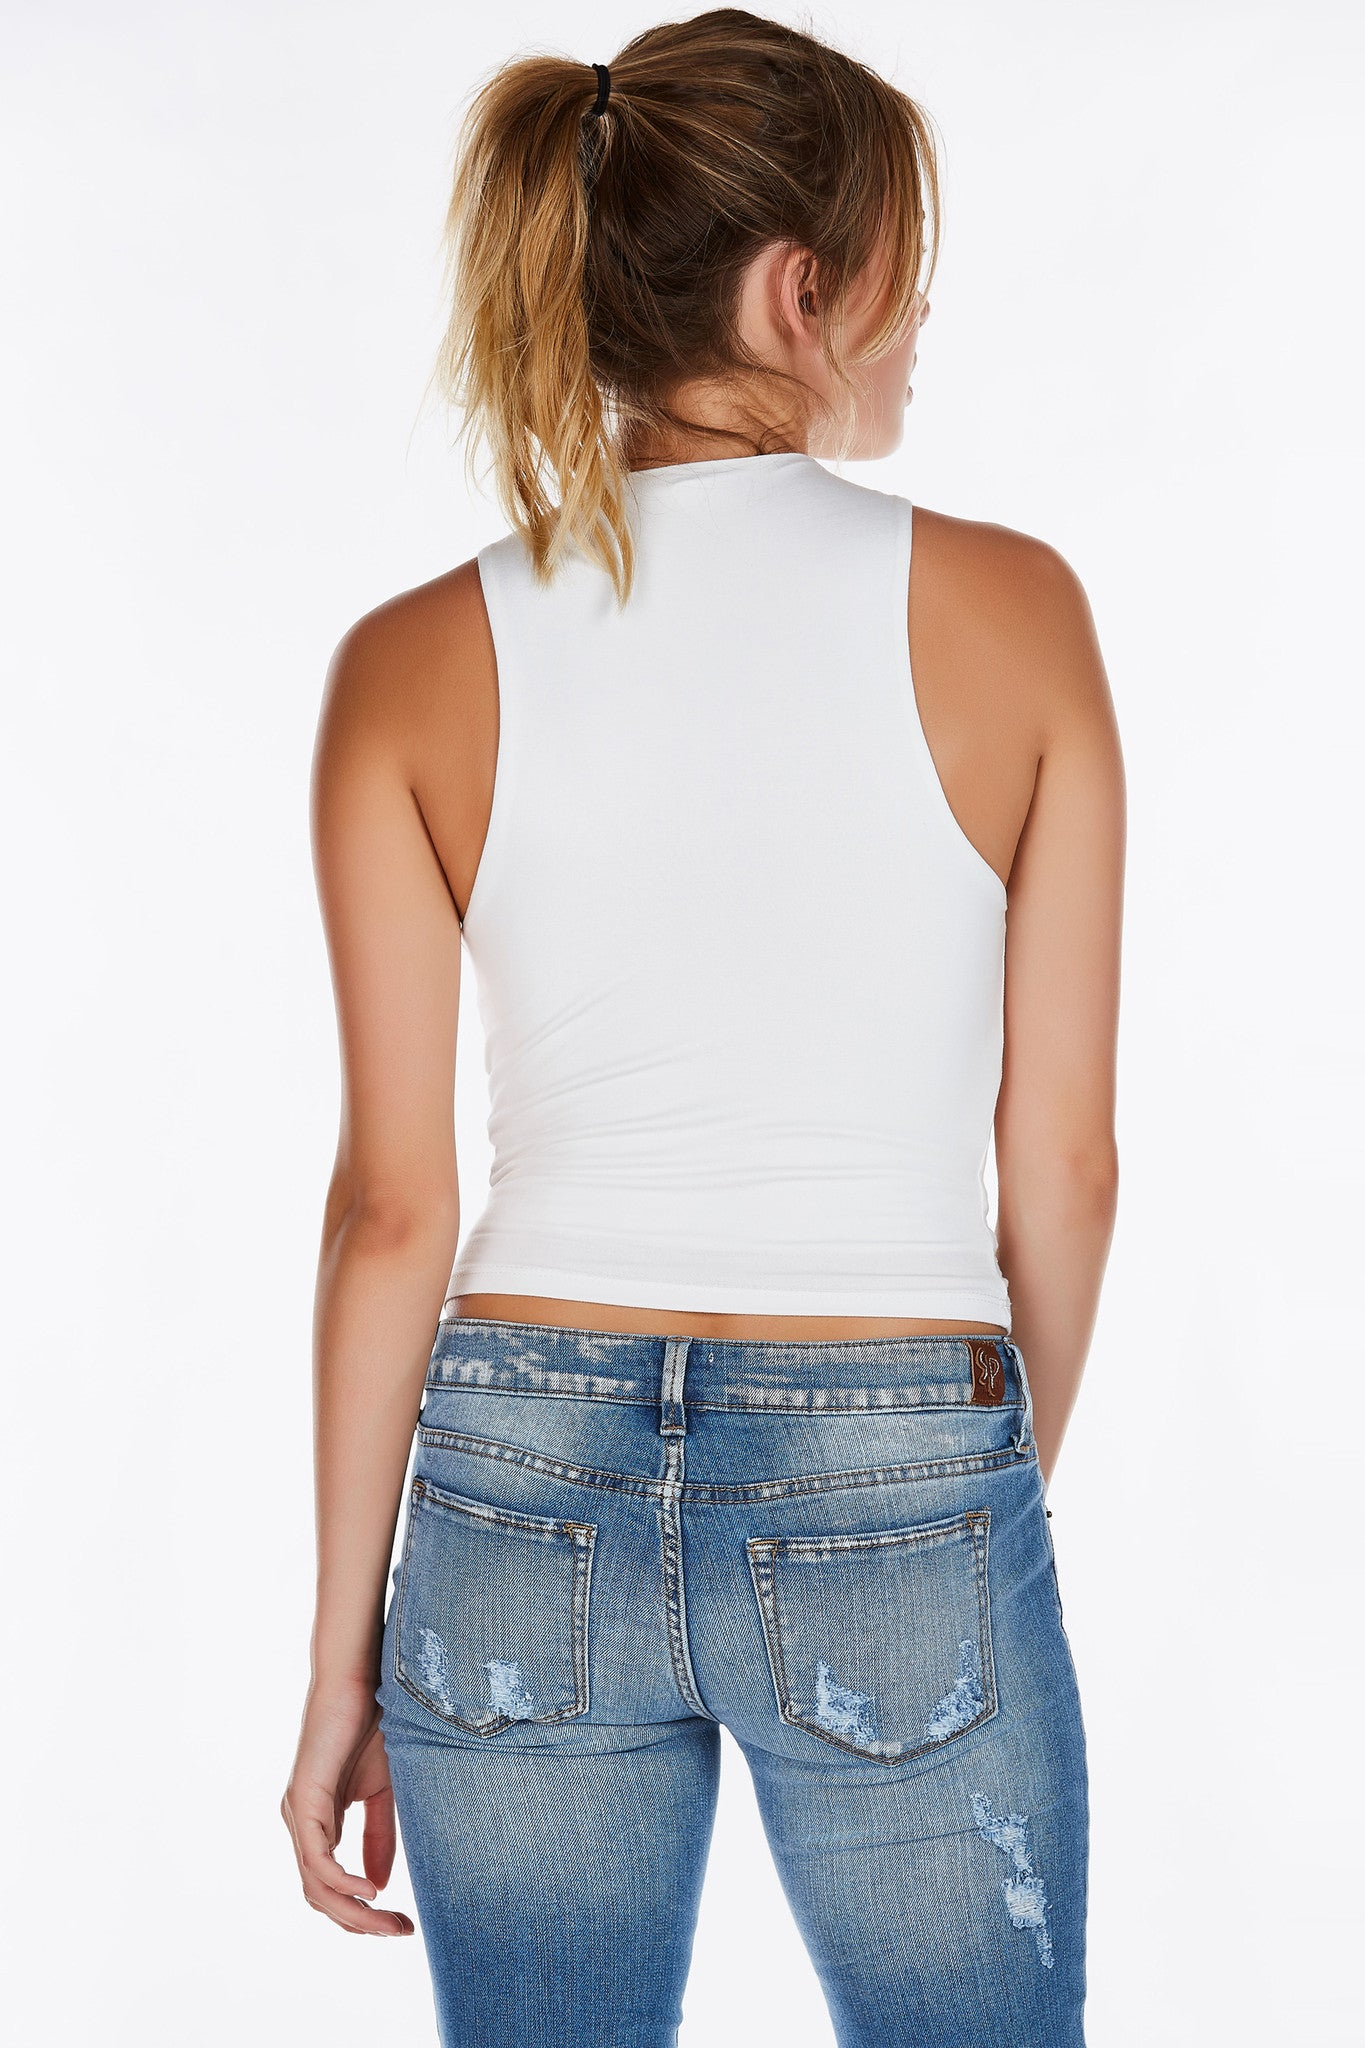 A staple for everyone's wardrobe. This fully lined high neck top is perfect all year round. Slightly cropped makes it easy to style with all kinds of bottoms. Soft stretchy material, you'll find yourself coming back for all colors!